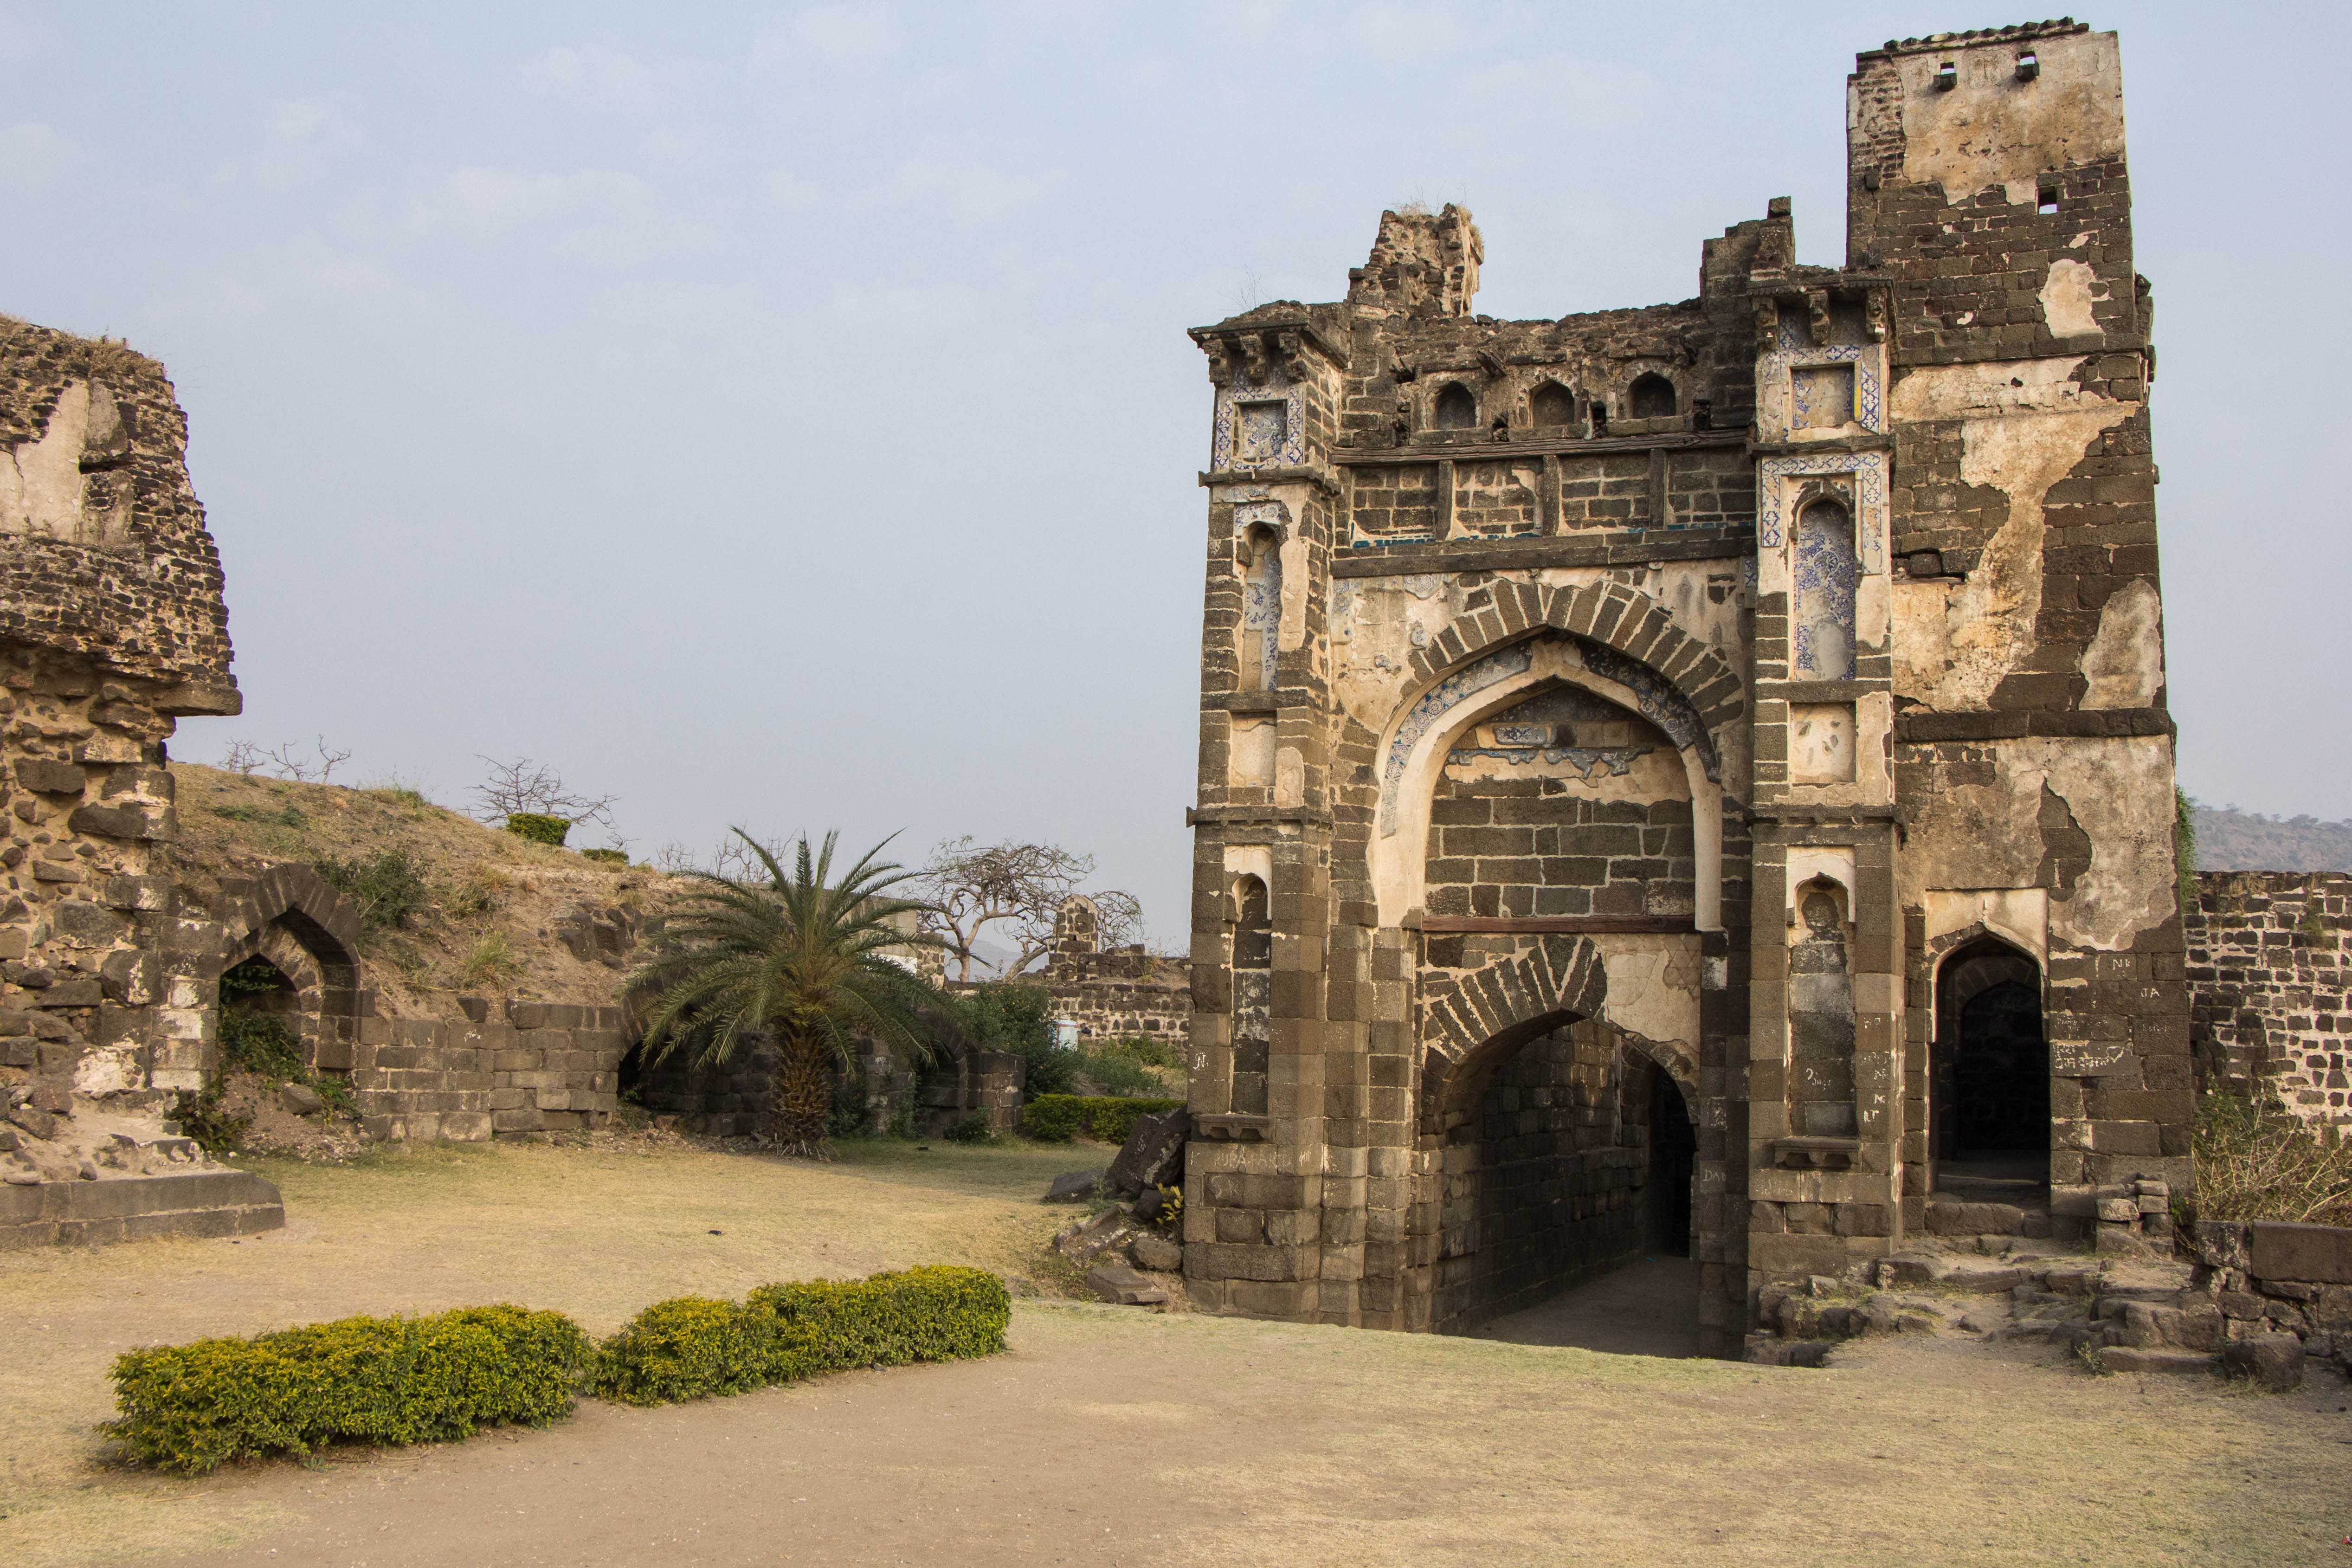 Daulatabad India  city photos : Daulatabad Fort, Aurangabad, India | Cooking in Tongues